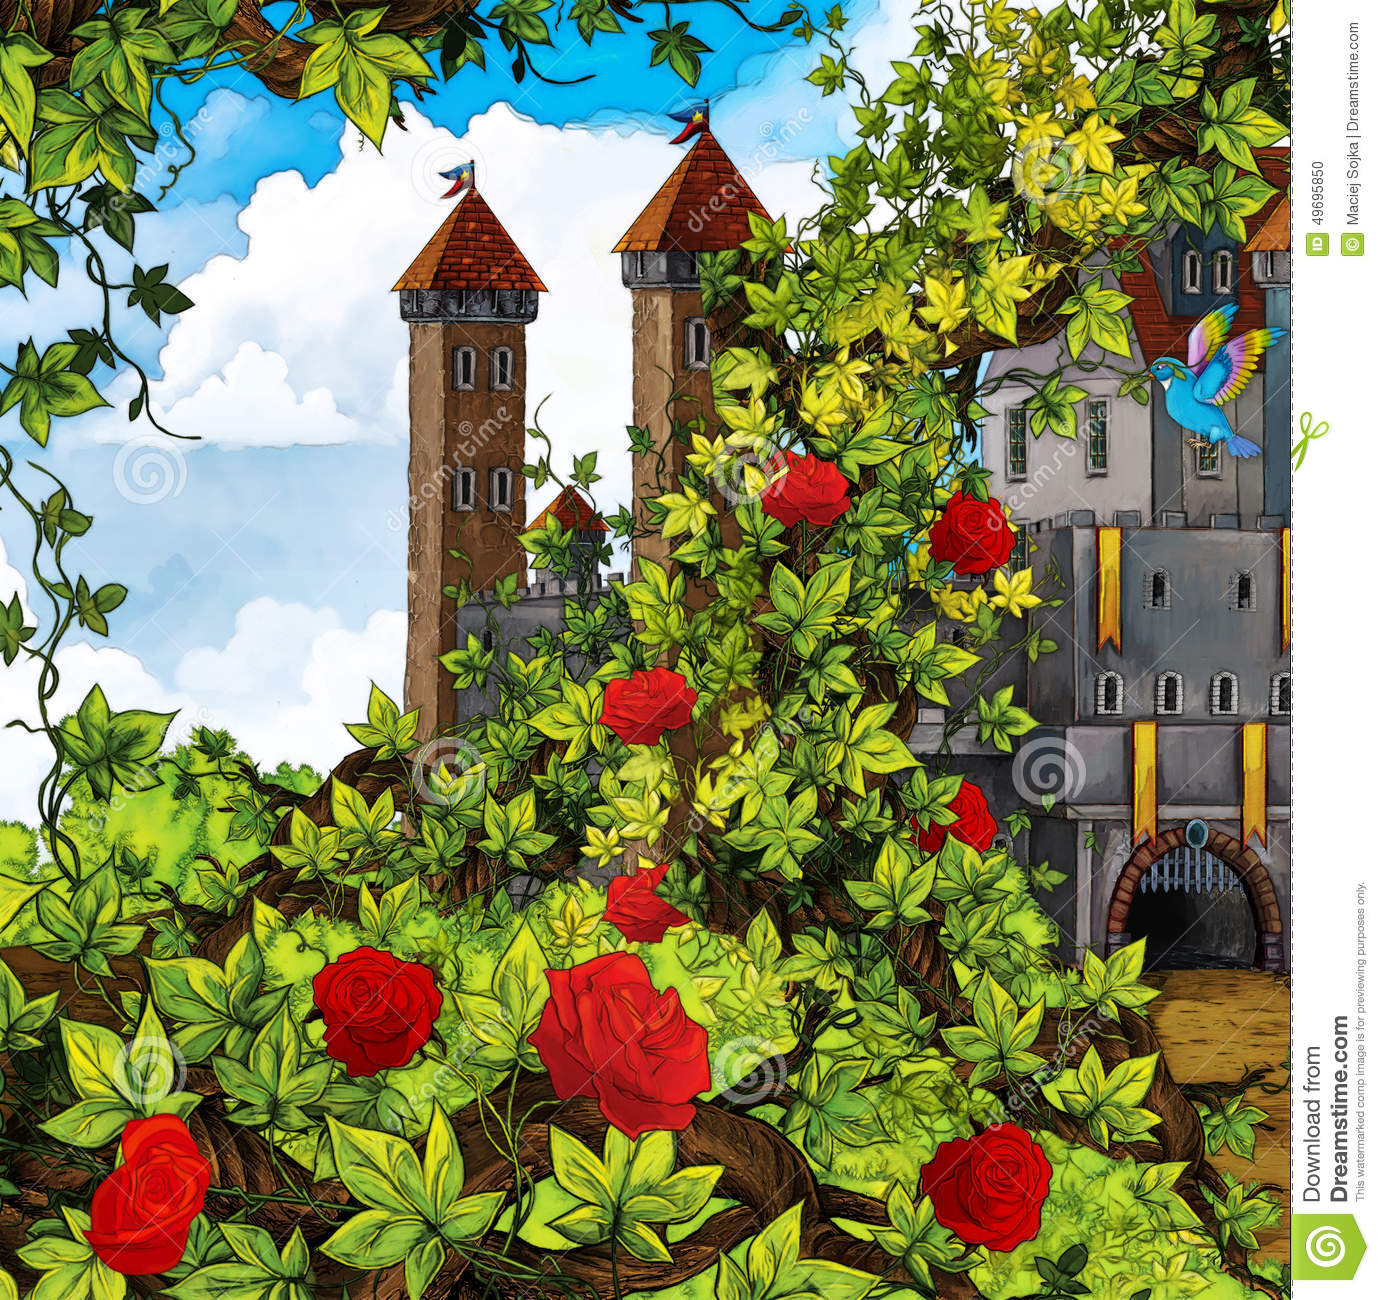 cartoon fairy tale scene garden castle beautiful colorful illustration children 49695850